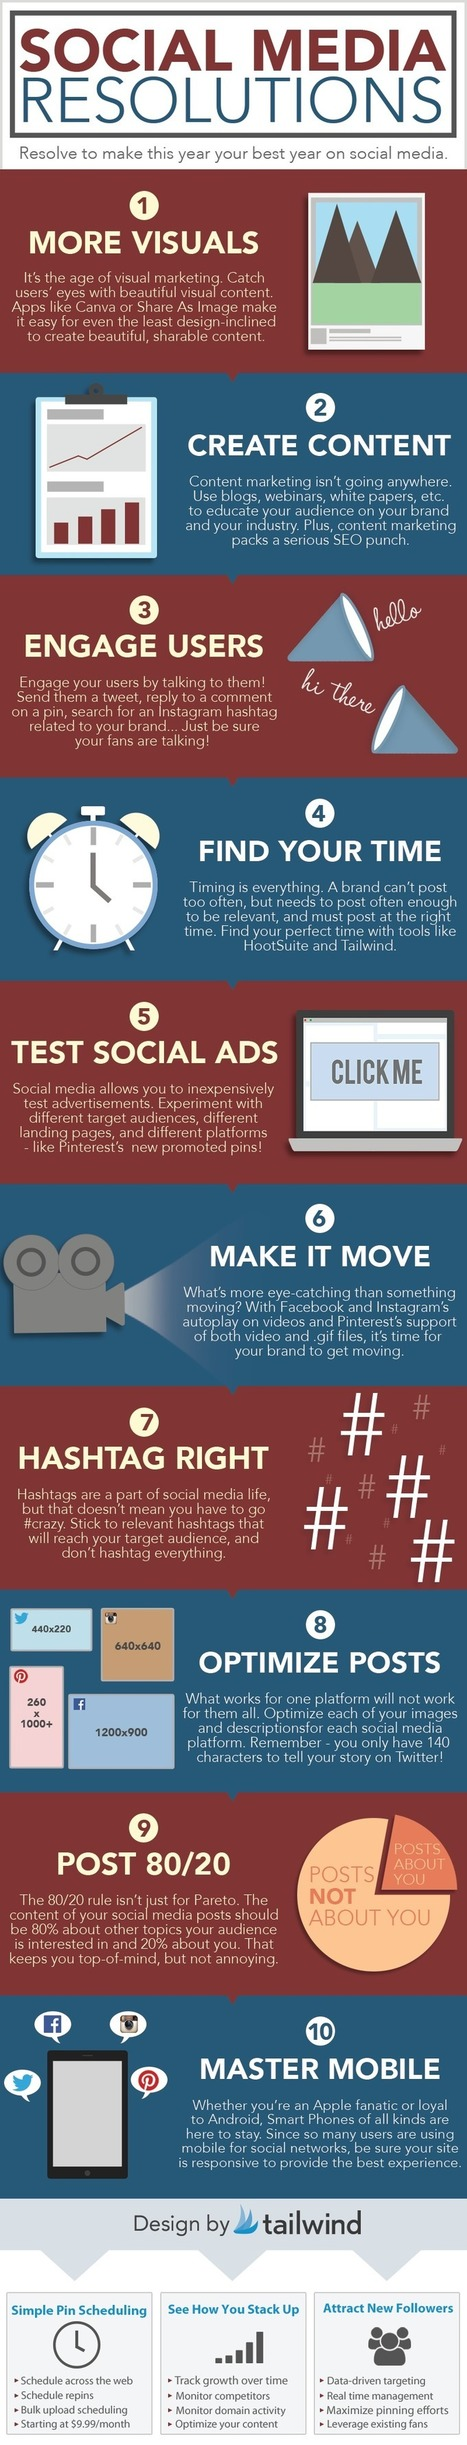 Social Media New Year's Resolutions [#INFOGRAPHIC] | Social Media  & Community Management | Scoop.it